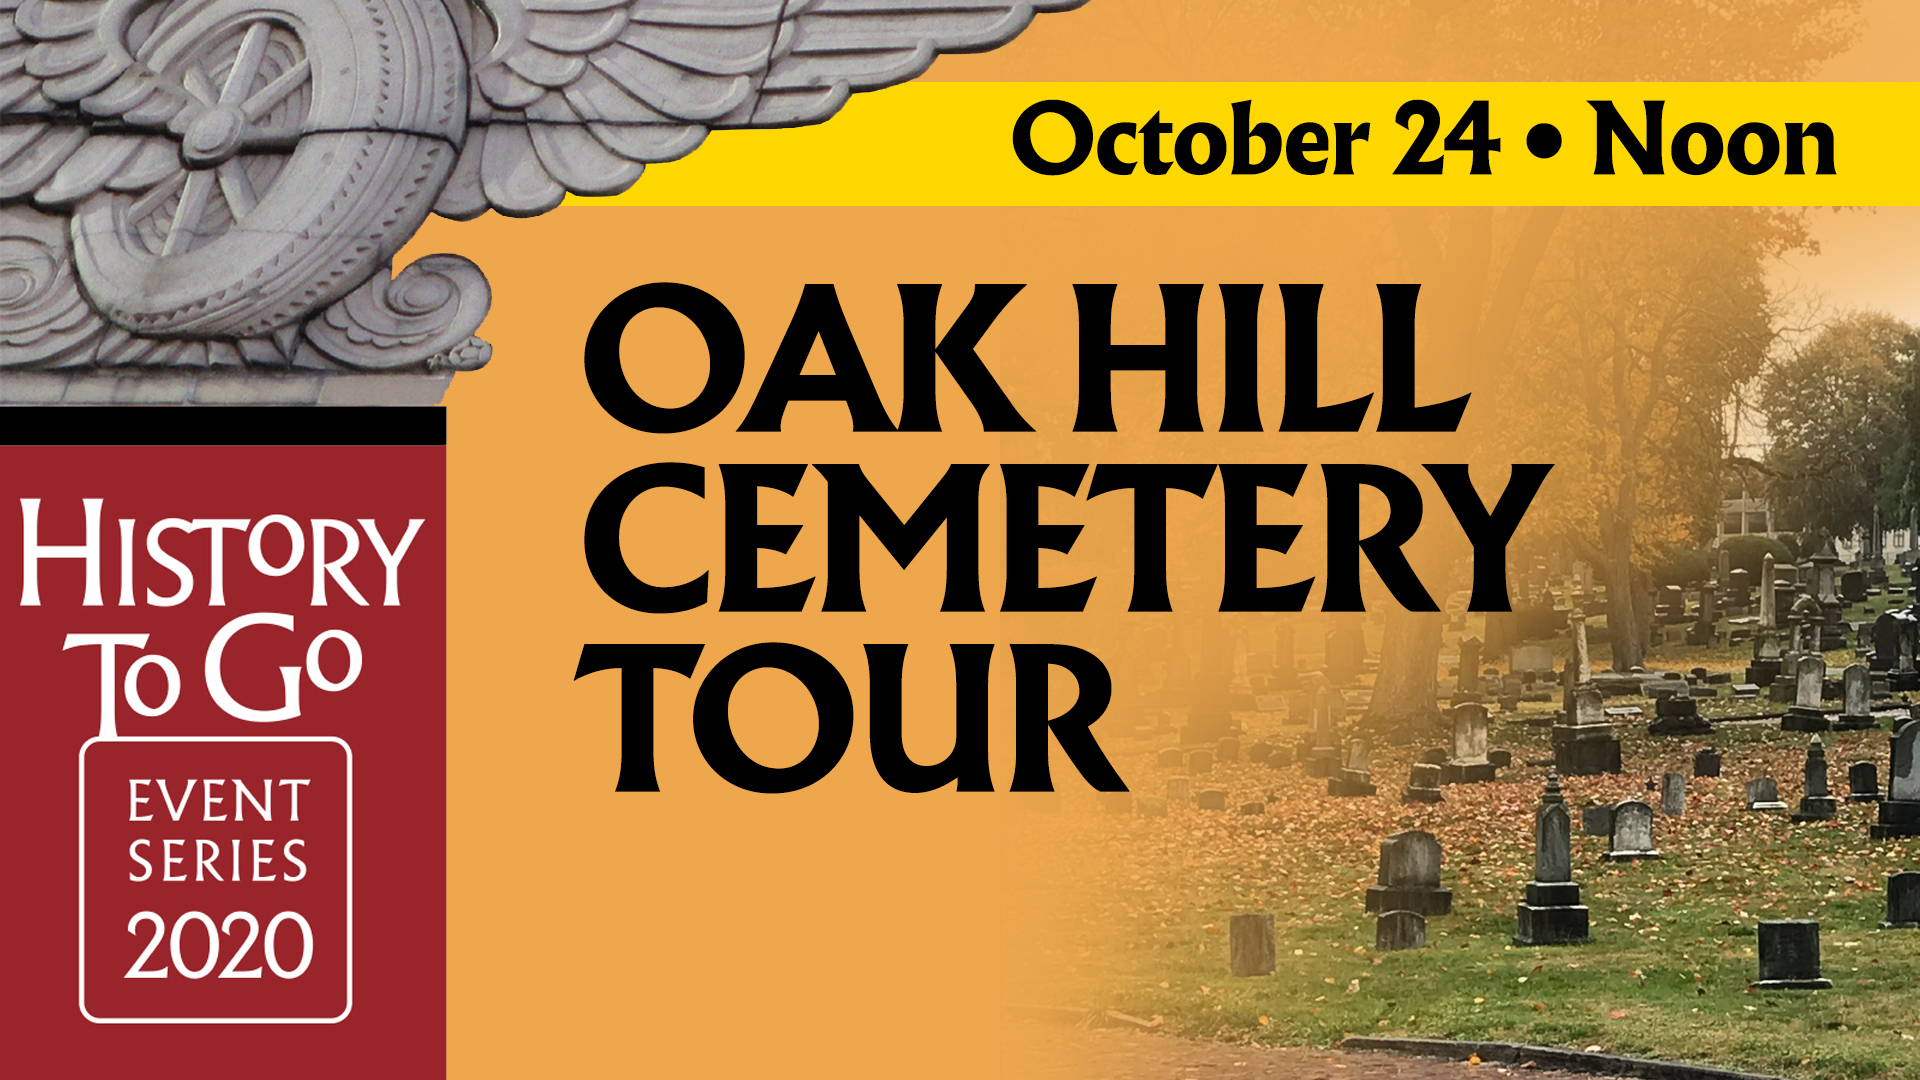 History To Go: Oak Hill Cemetery Tour